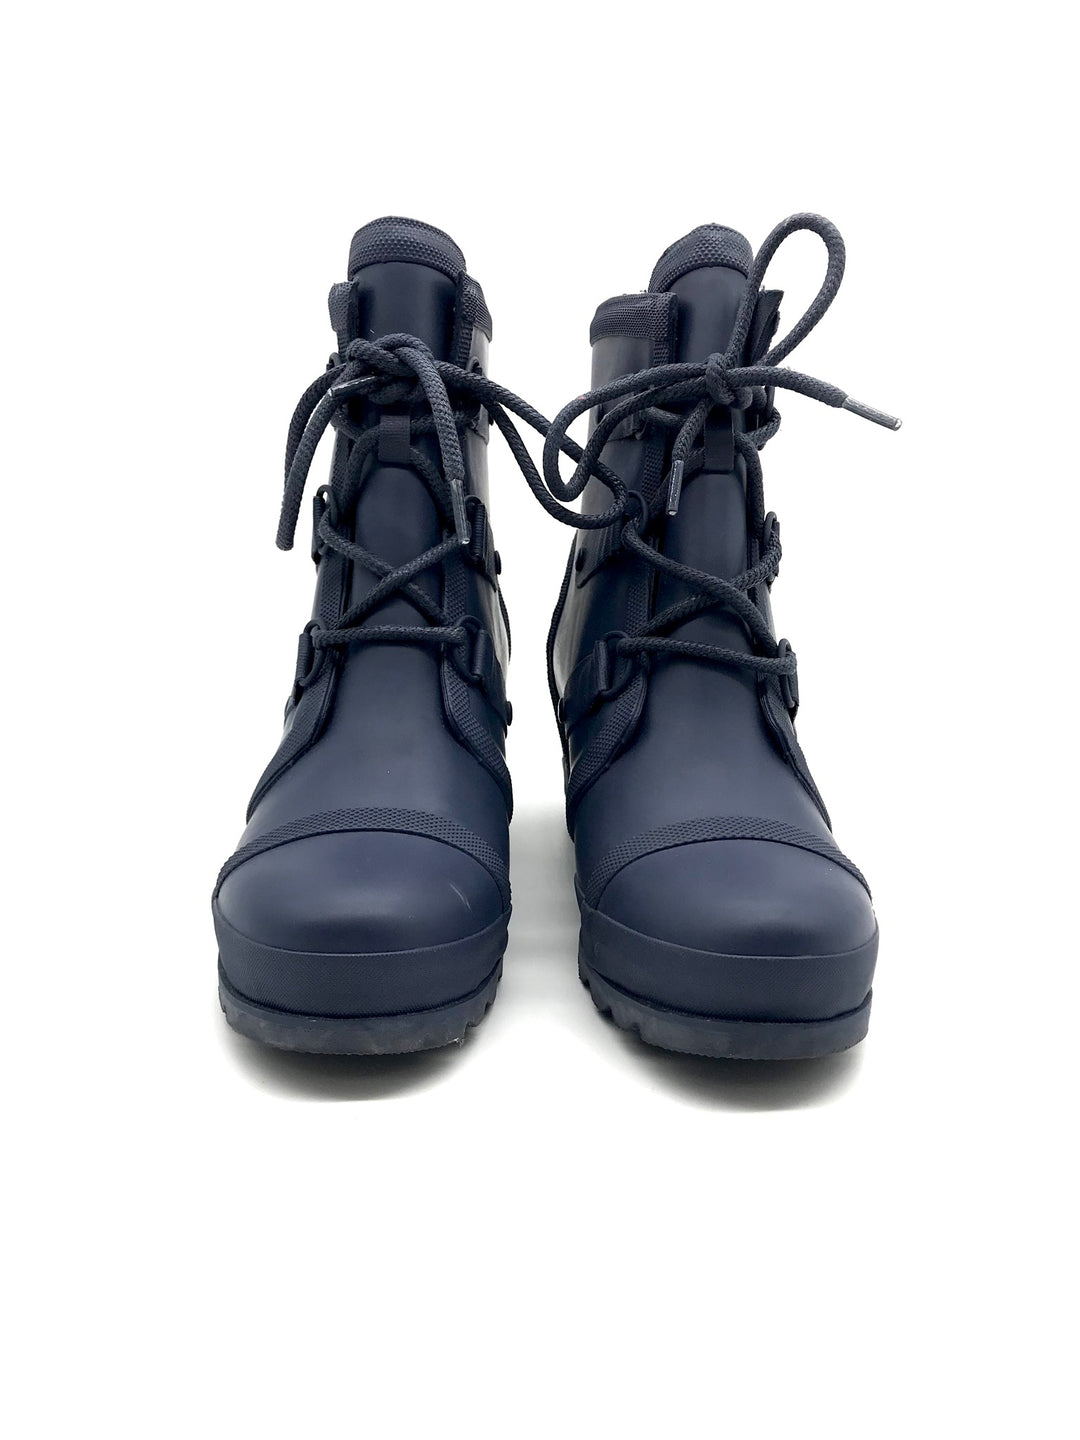 Primary Photo - BRAND: SOREL <BR>STYLE: BOOTS ANKLE <BR>COLOR: NAVY <BR>SIZE: 9 <BR>SKU: 262-26275-64764<BR>SLIGHT WEAR AS IS <BR>DESIGNER BRAND FINAL SALE